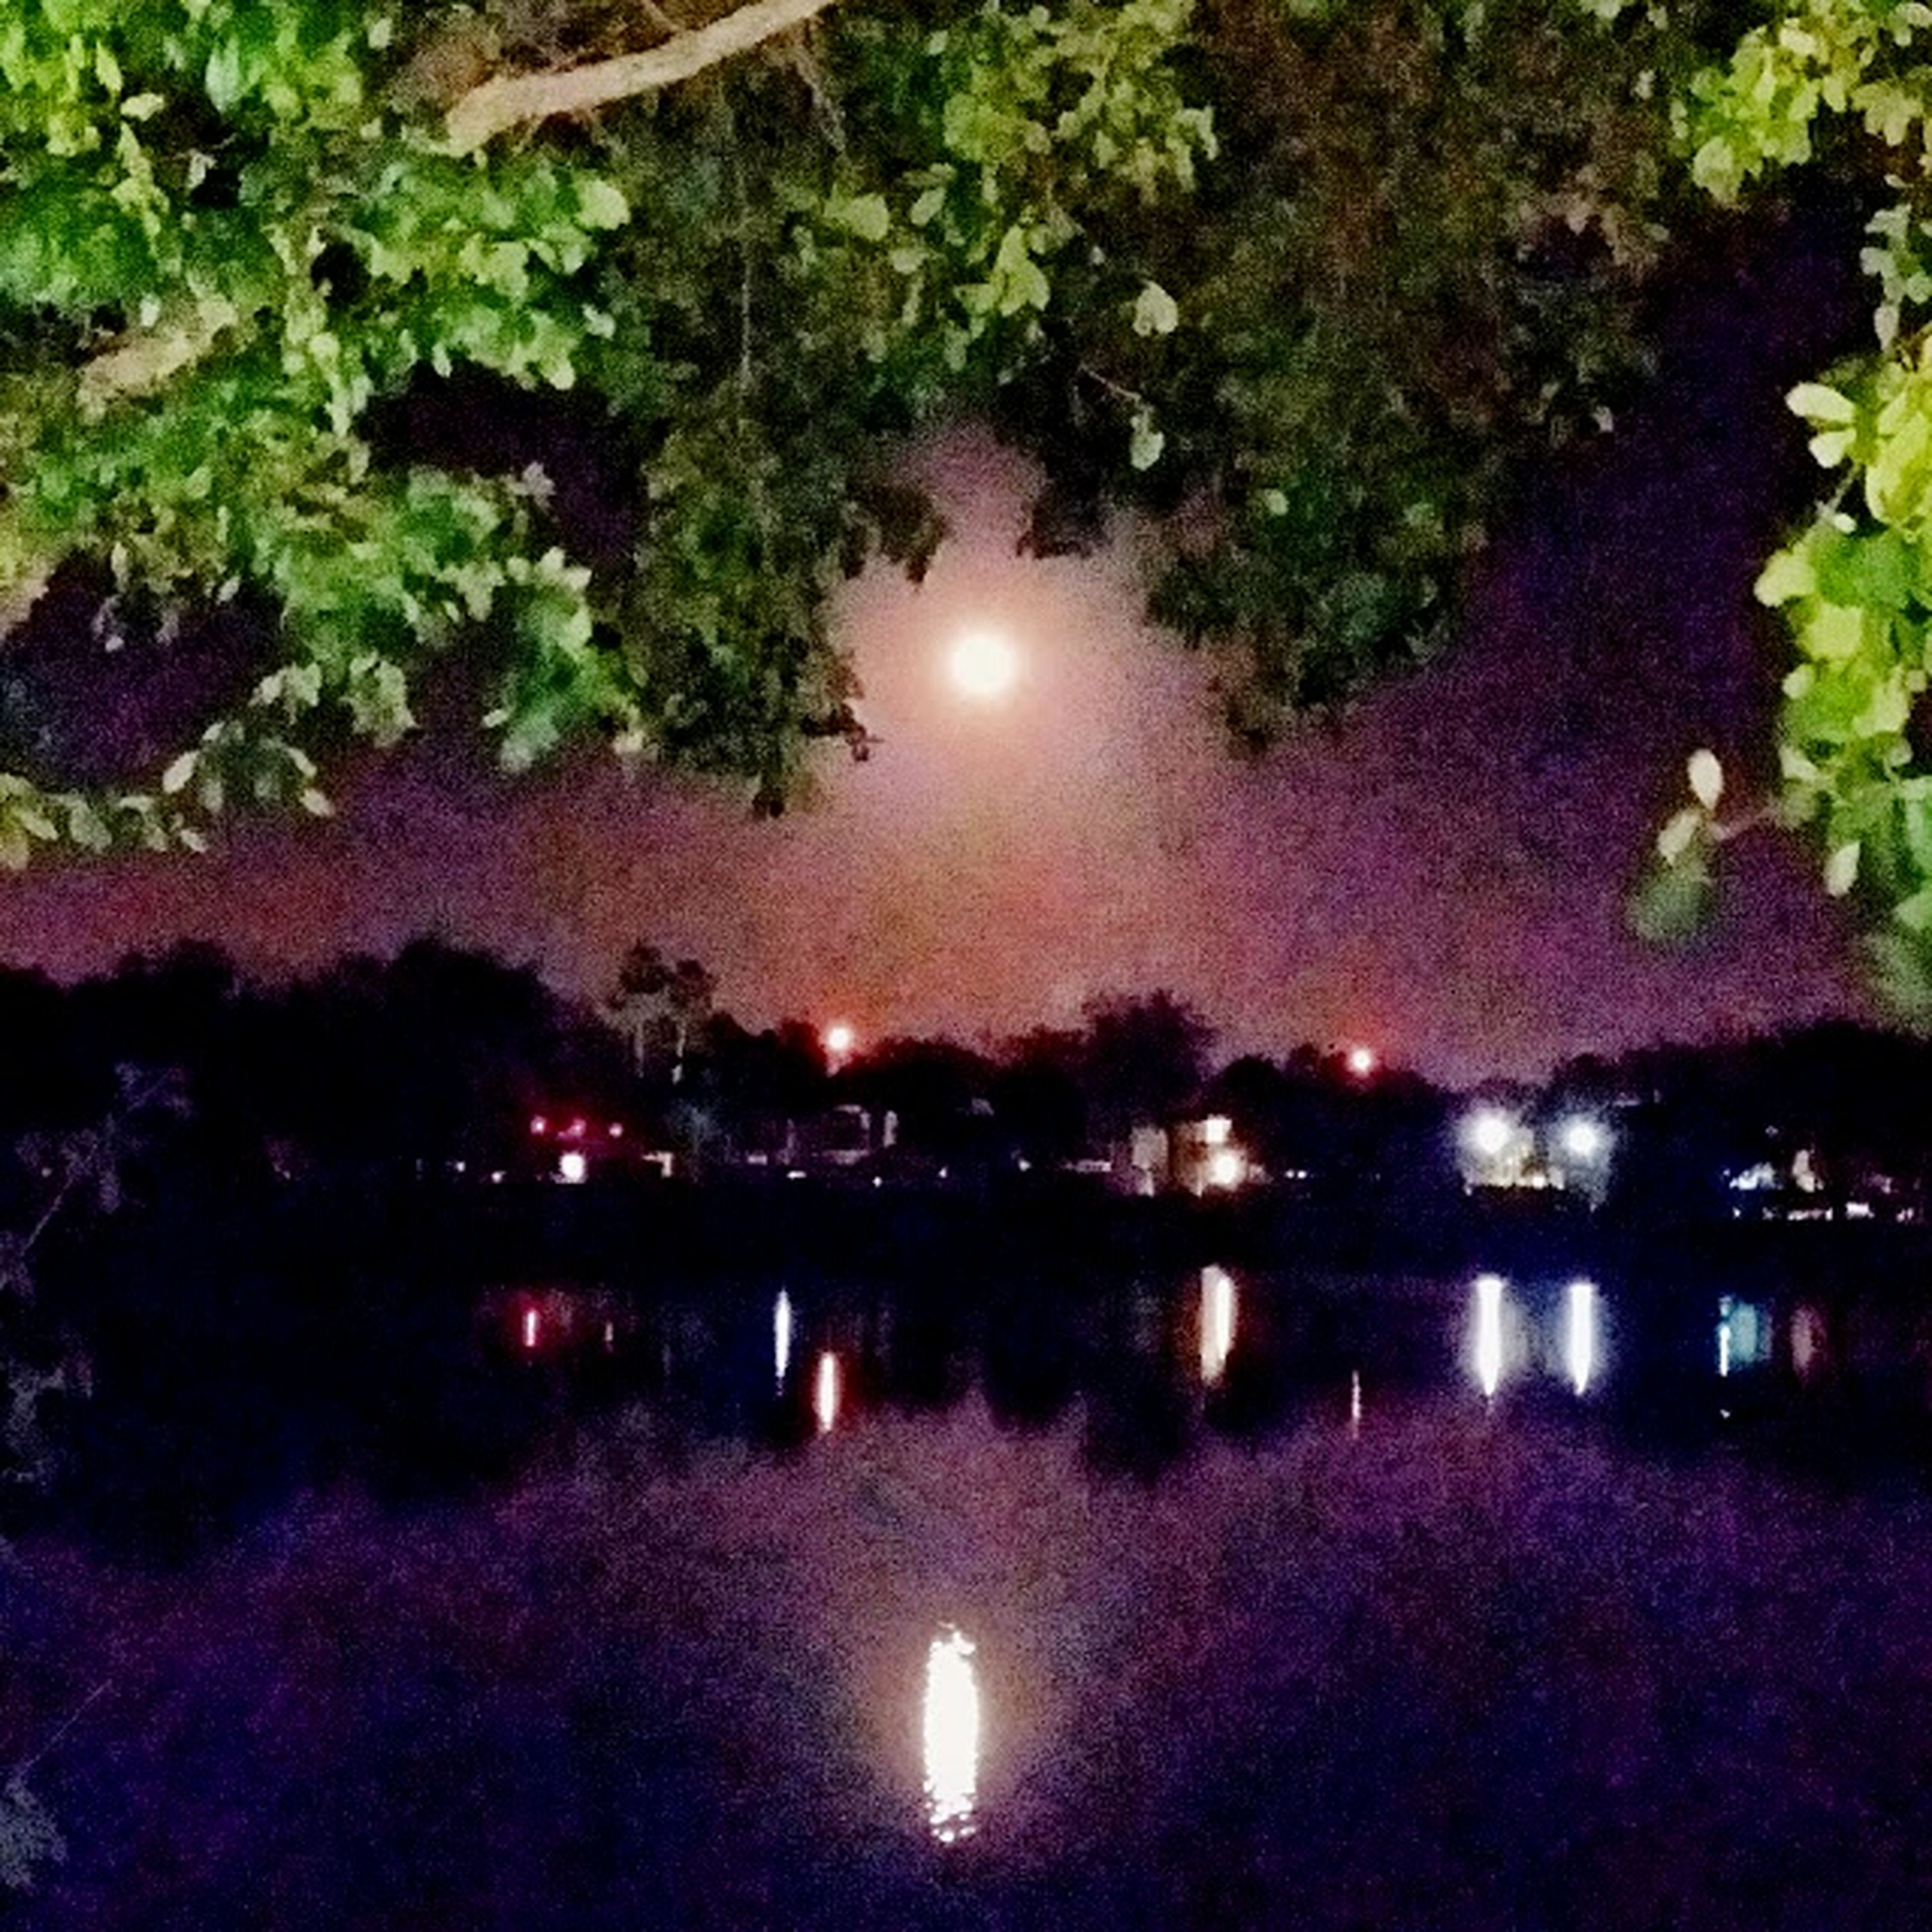 illuminated, tree, night, water, reflection, tranquility, scenics, tranquil scene, beauty in nature, growth, nature, lake, sky, idyllic, outdoors, glowing, pink color, no people, multi colored, park - man made space